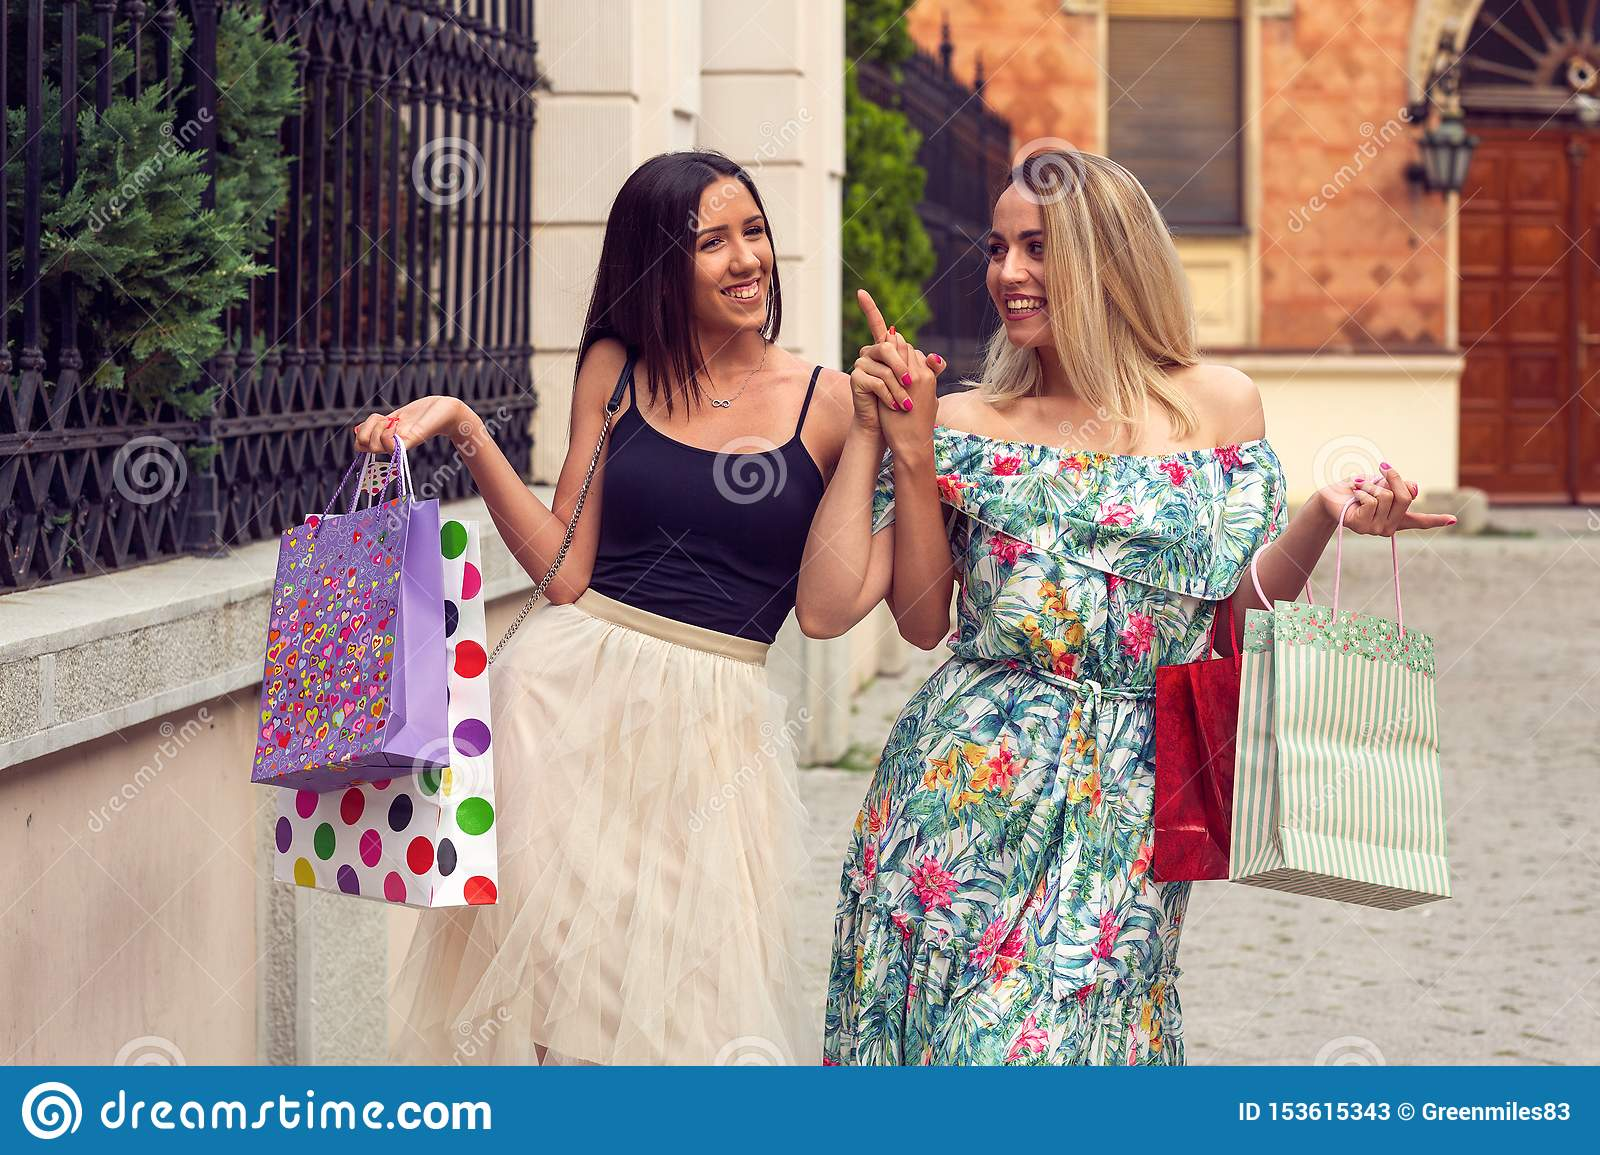 Happiness, friends, sale and fun concept-smiling girlfriends with shopping bags